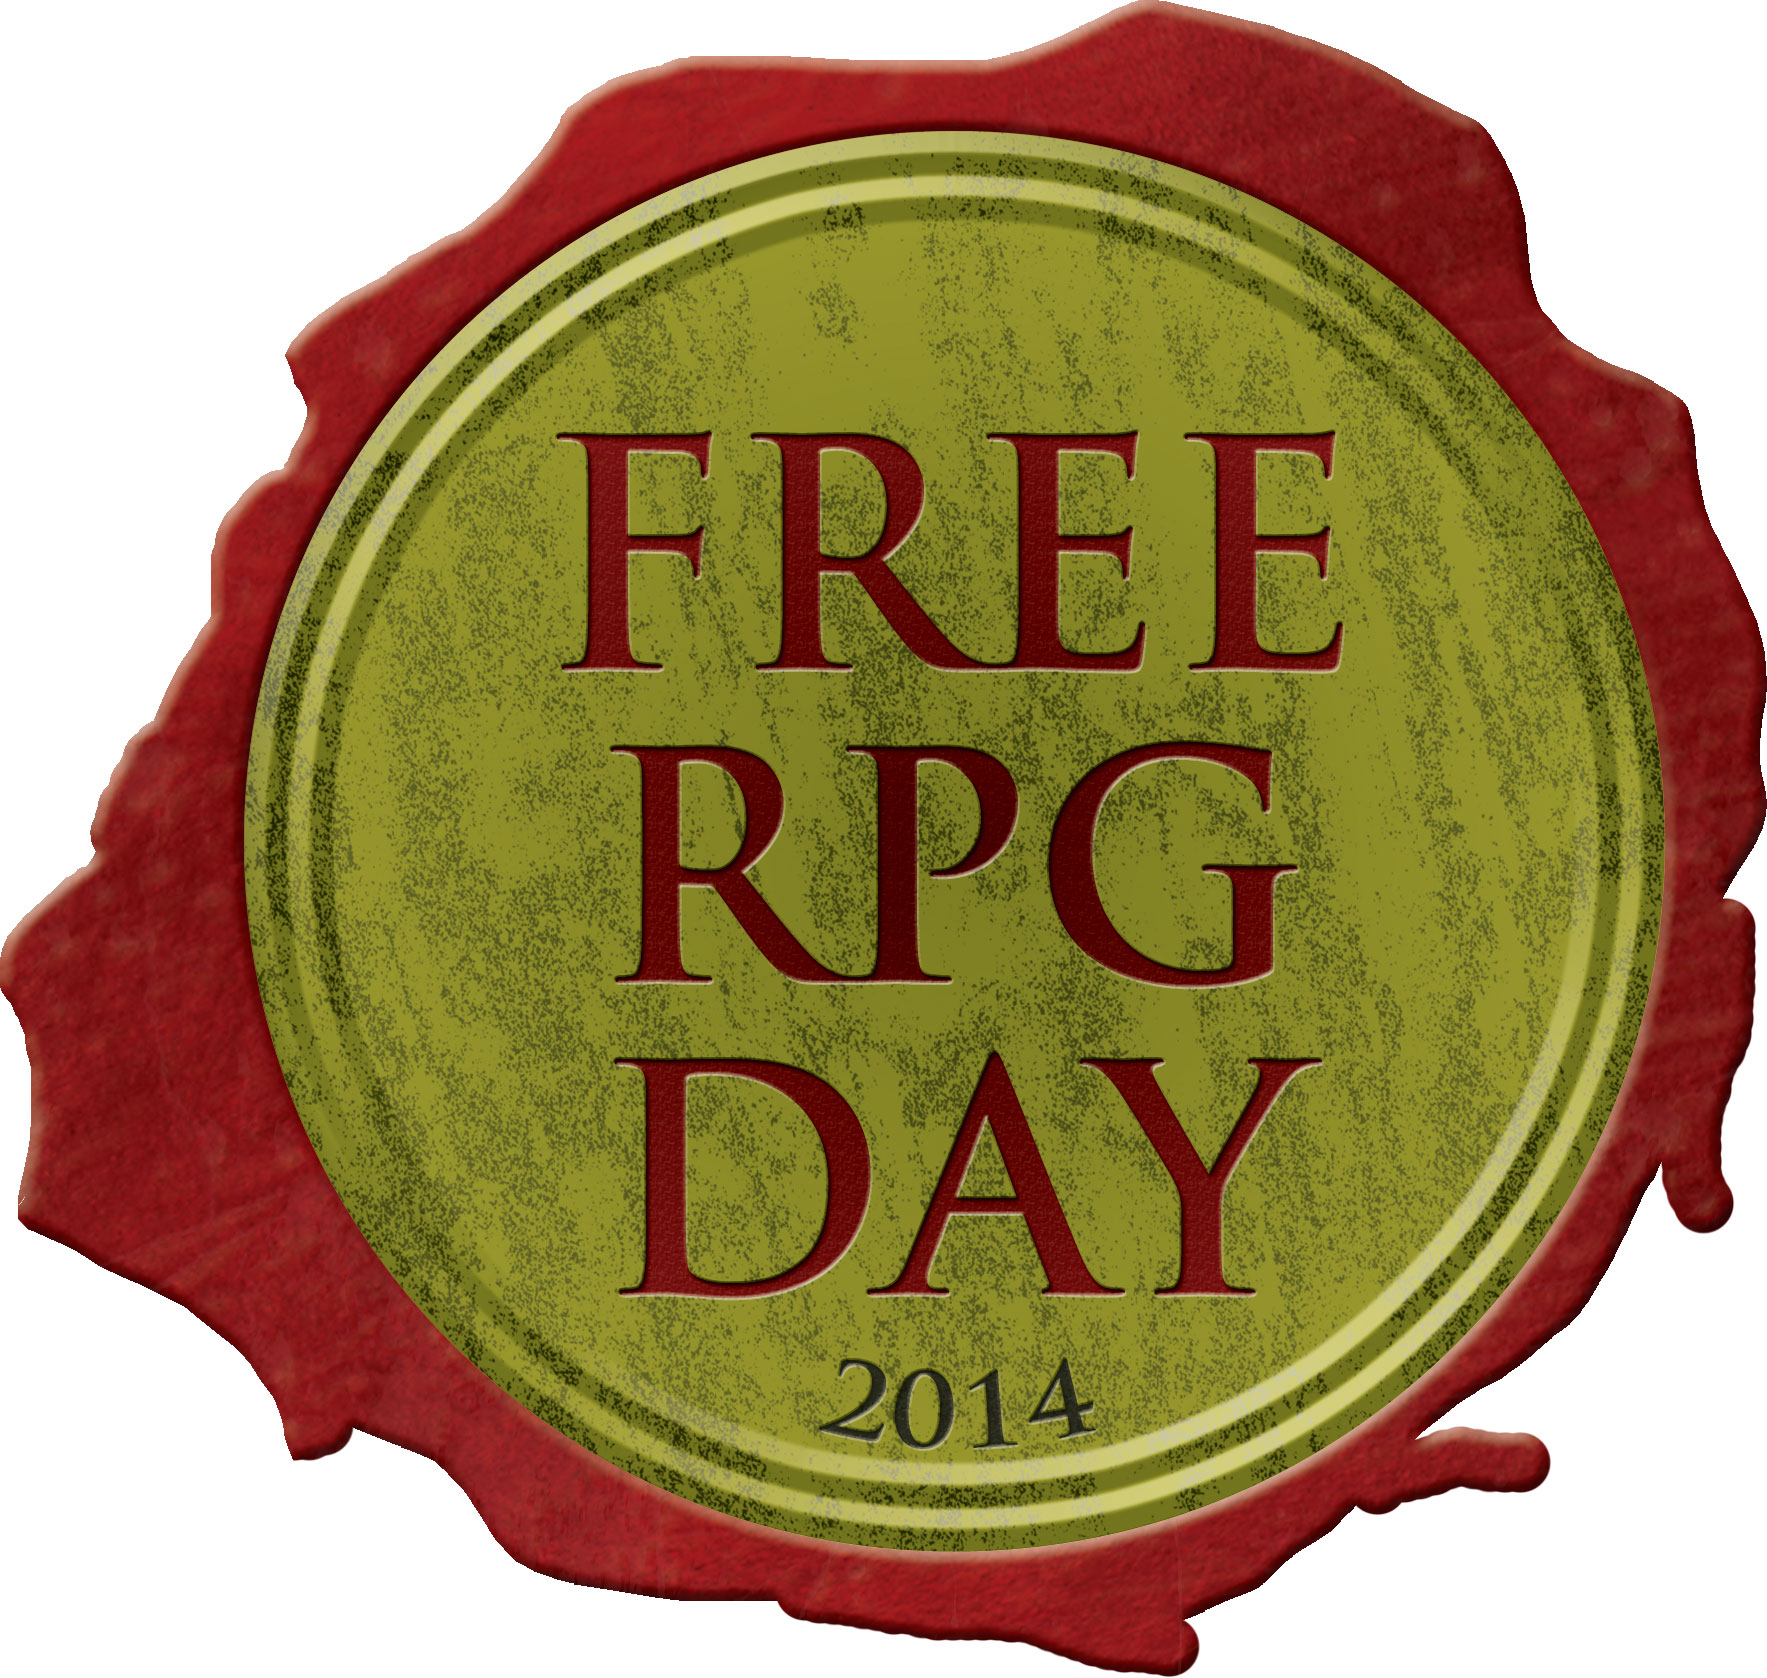 free rpg day logo 2014